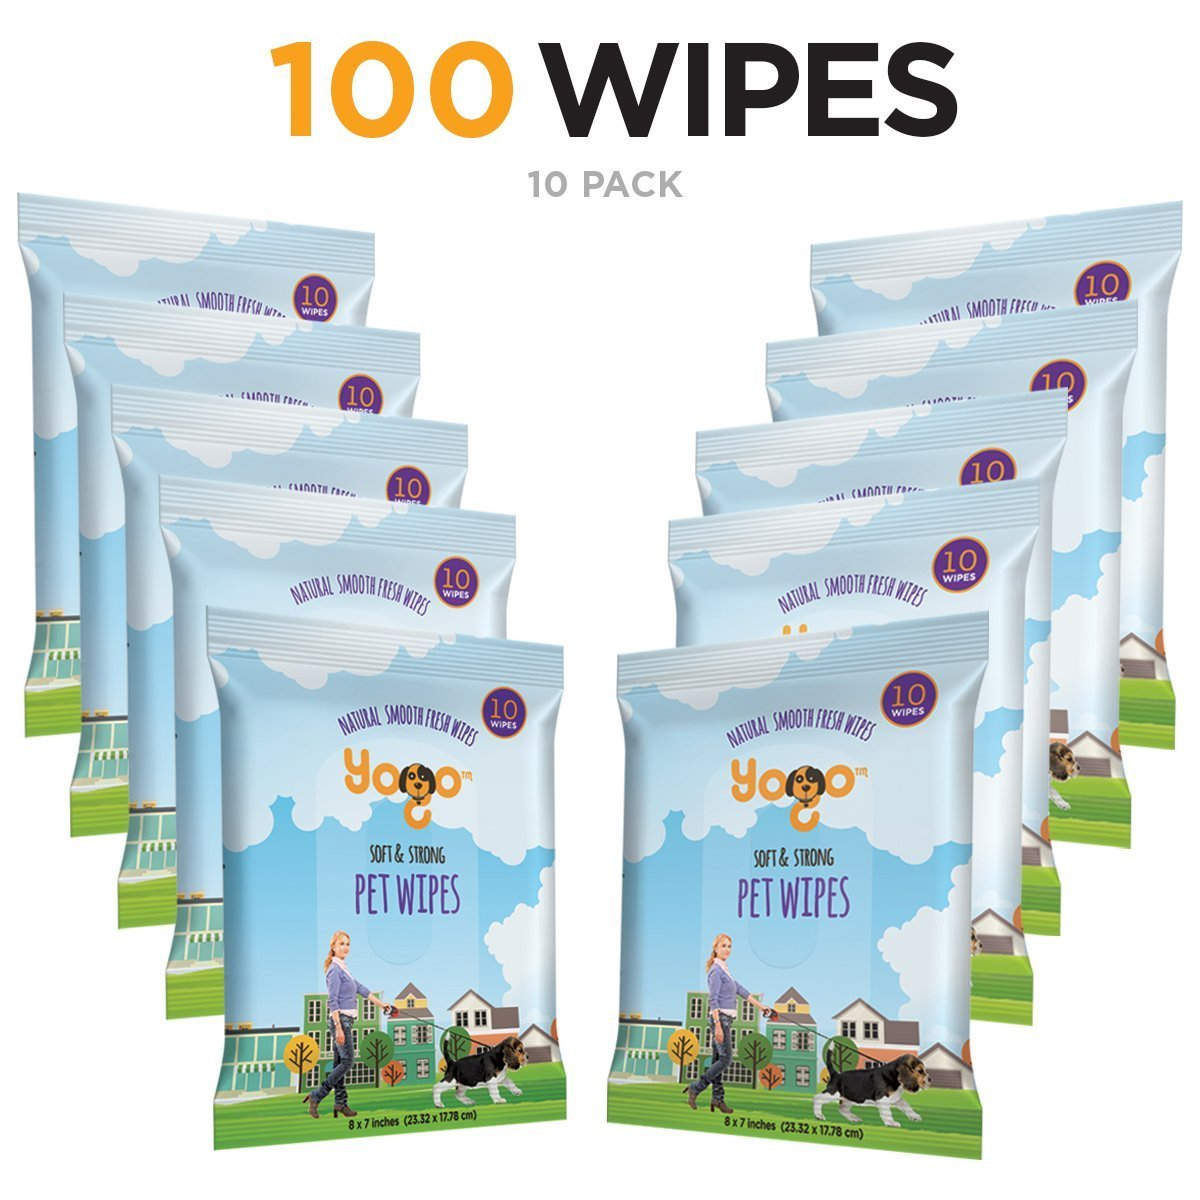 Grooming wipes help keep service dogs clean while on the go.